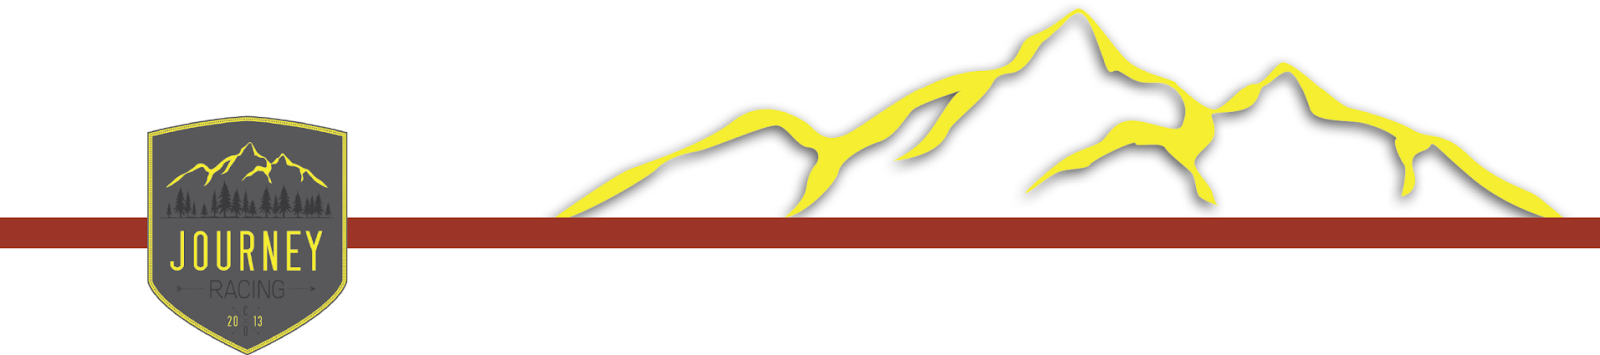 Journey Logo Yellow and Red.png